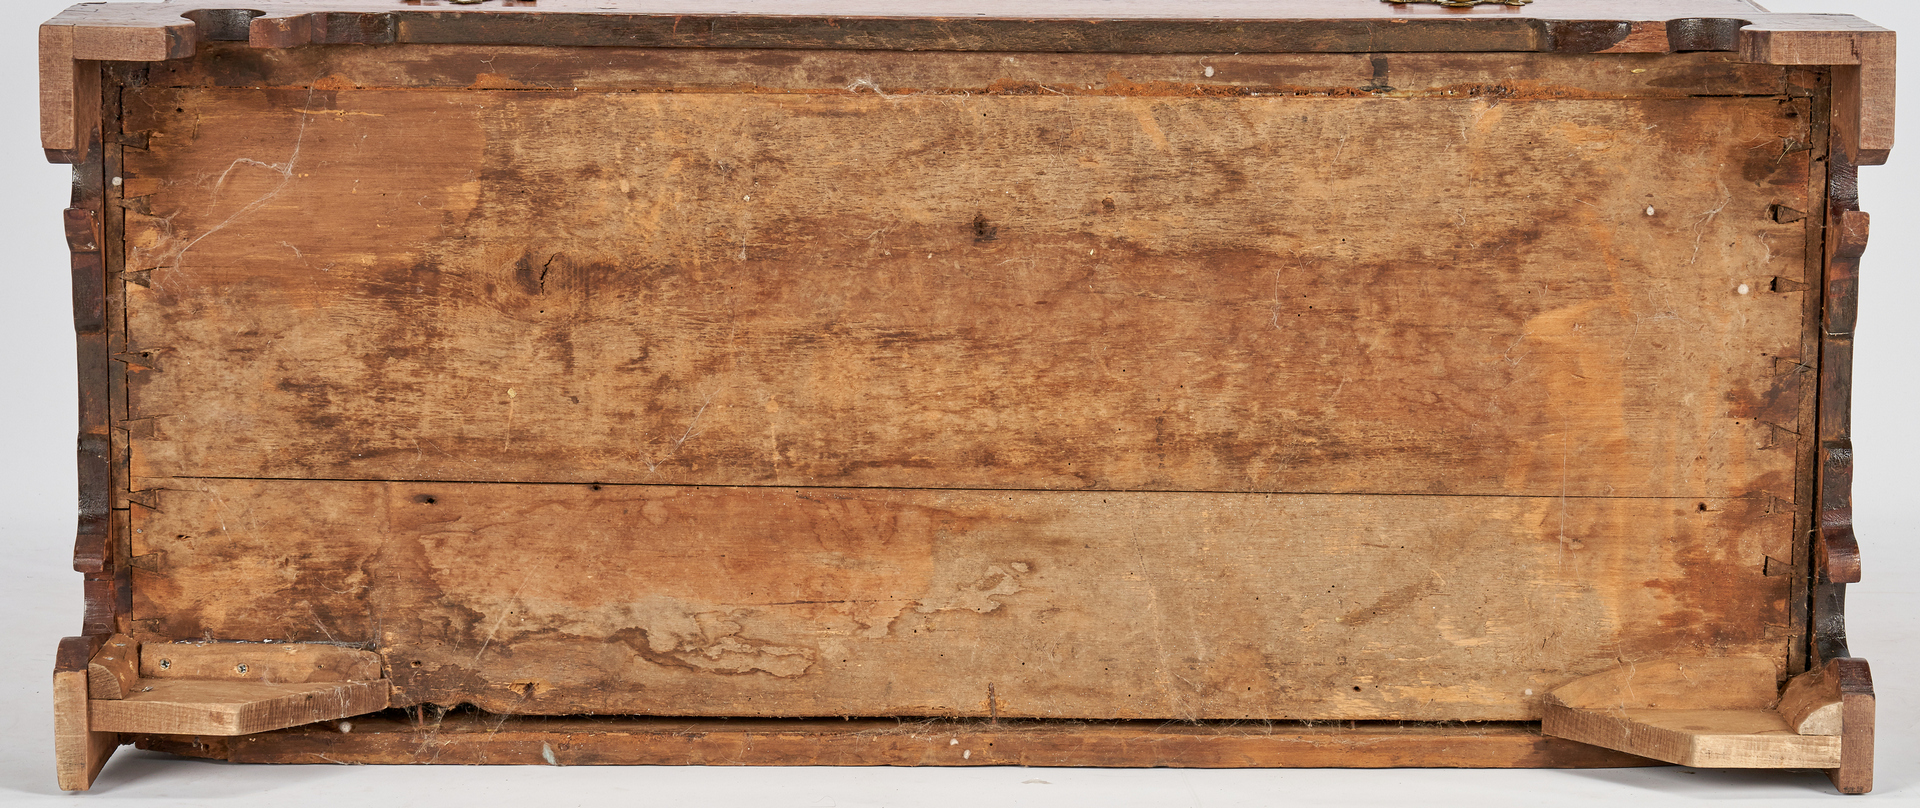 Lot 163: Southern Inlaid Chest of Drawers